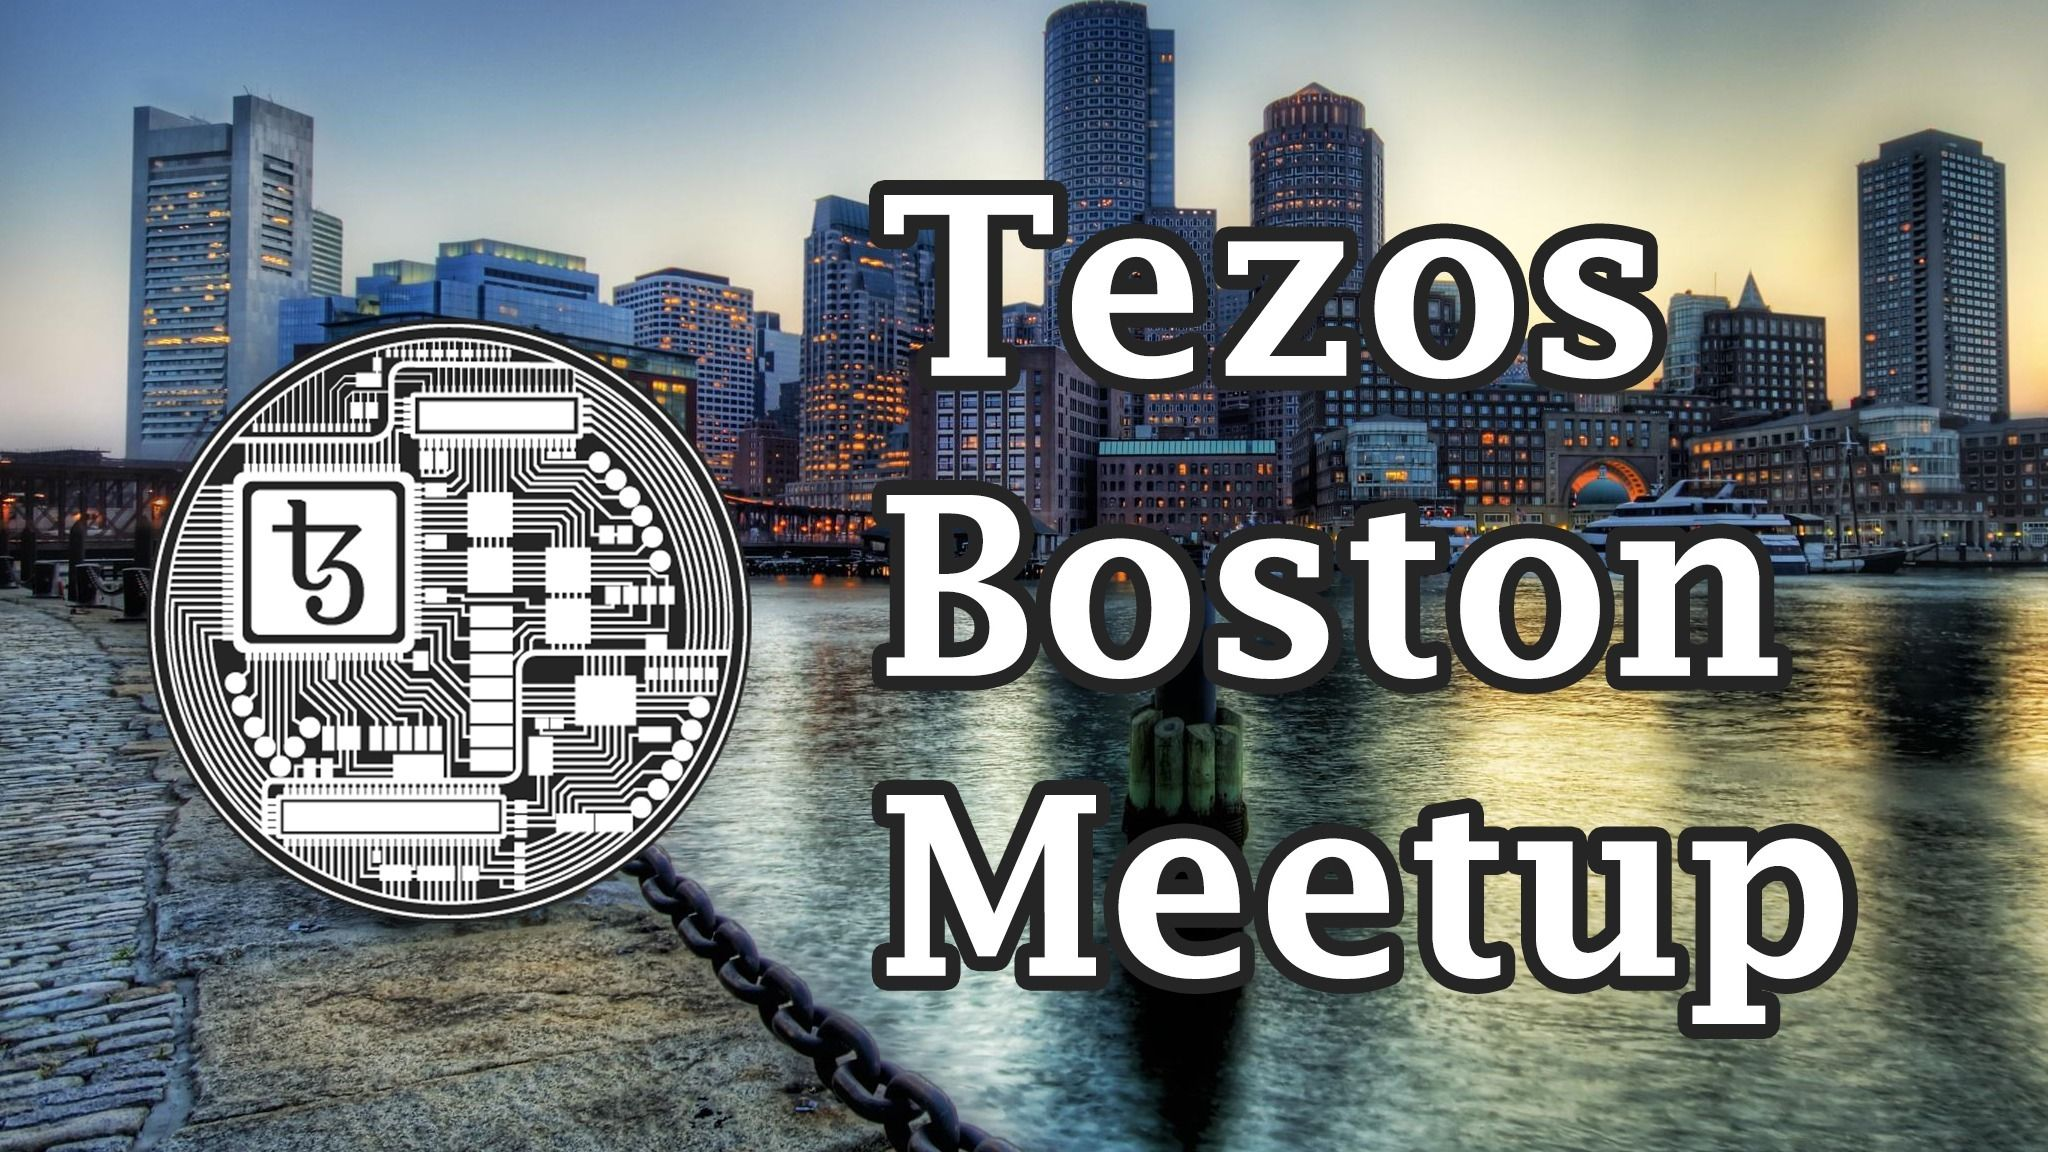 Tezos Boston Meetup